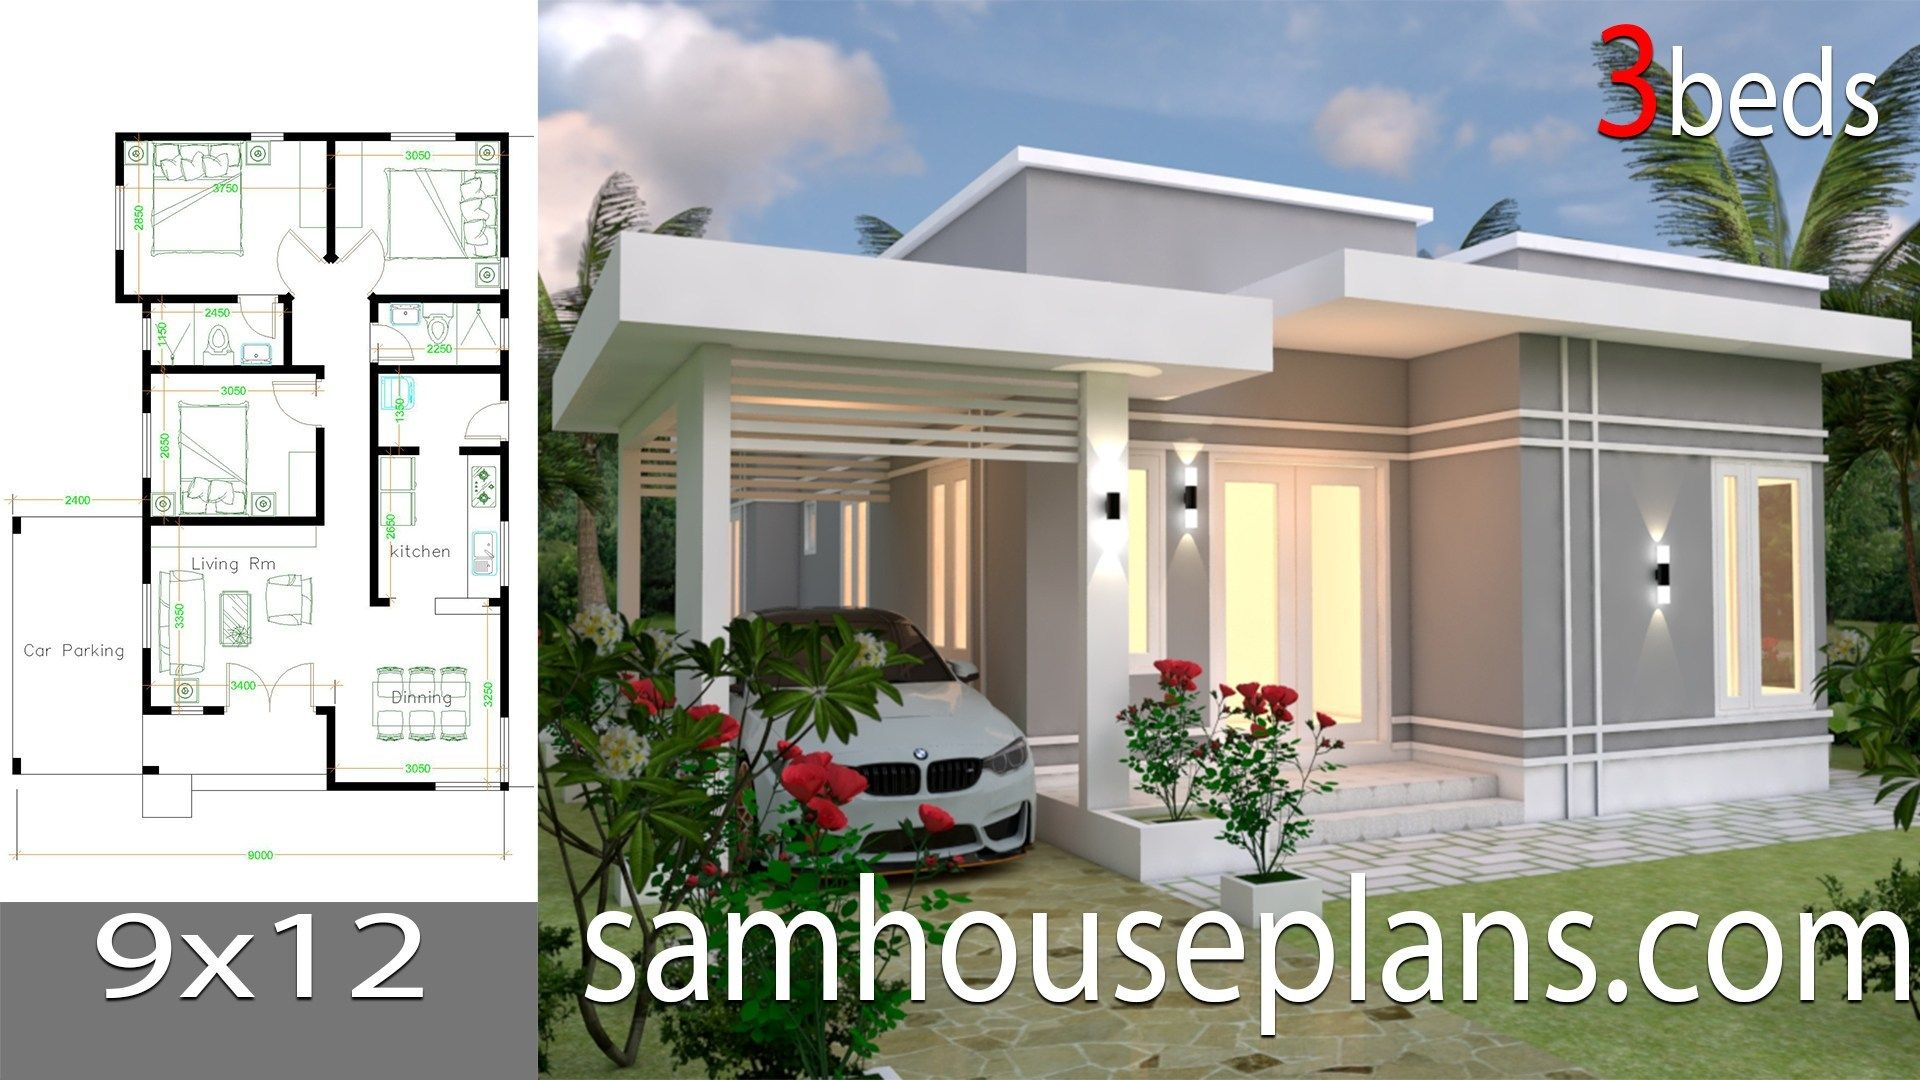 House Plans 9x12 With 3 Bedrooms Sam House Plans House Plans Bedroom House Plans House Roof